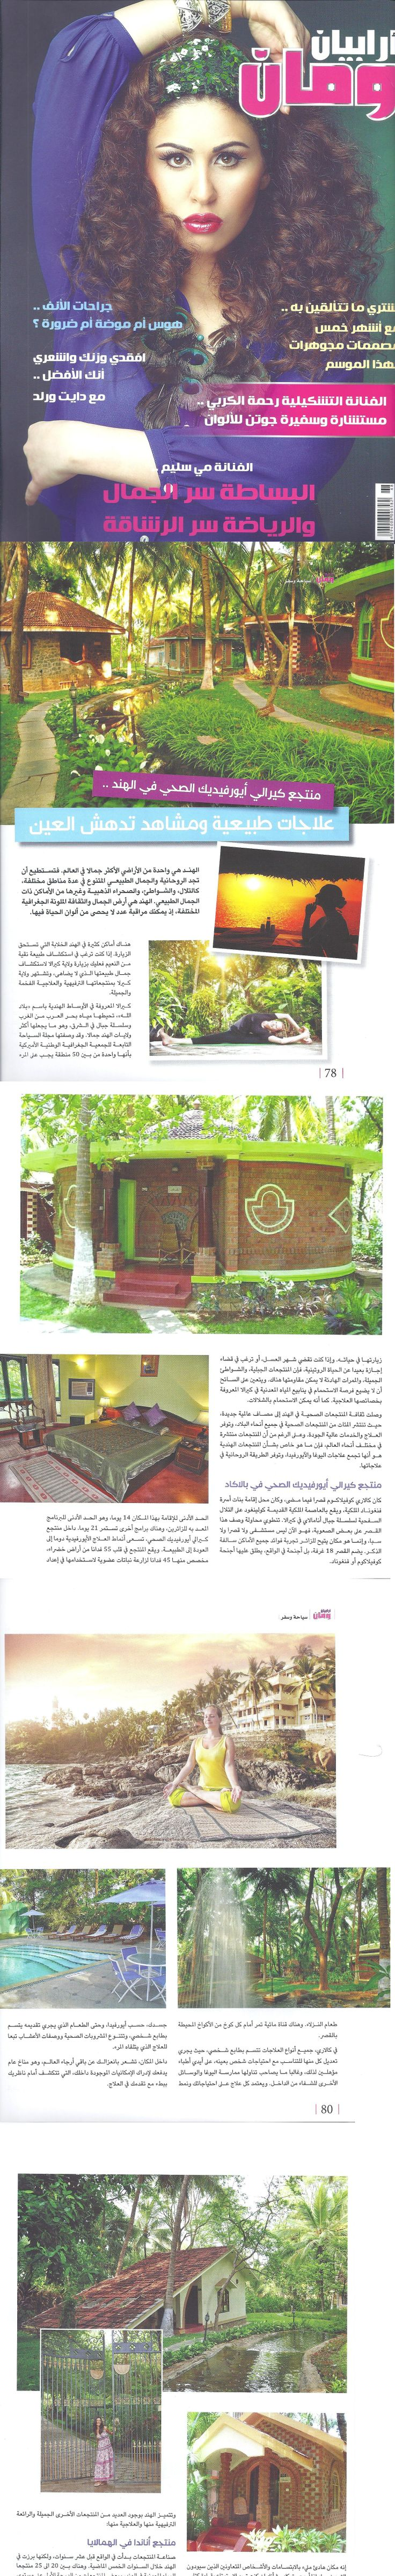 A delightfulArticle AboutKairali - The Healing Village published by Arabian Women Magazine. An Arabian Women magazine published a wonderful article of Kairali- the Ayurvedic Healing Village. The writer of the article had of late visited our Ayurvedic Healing Village in Palakkad and wrote a glowing article about her stay. This is a very prominent magazine in the Arab world, and it is a matter of great pride for us to be featured in this prominent magazine.